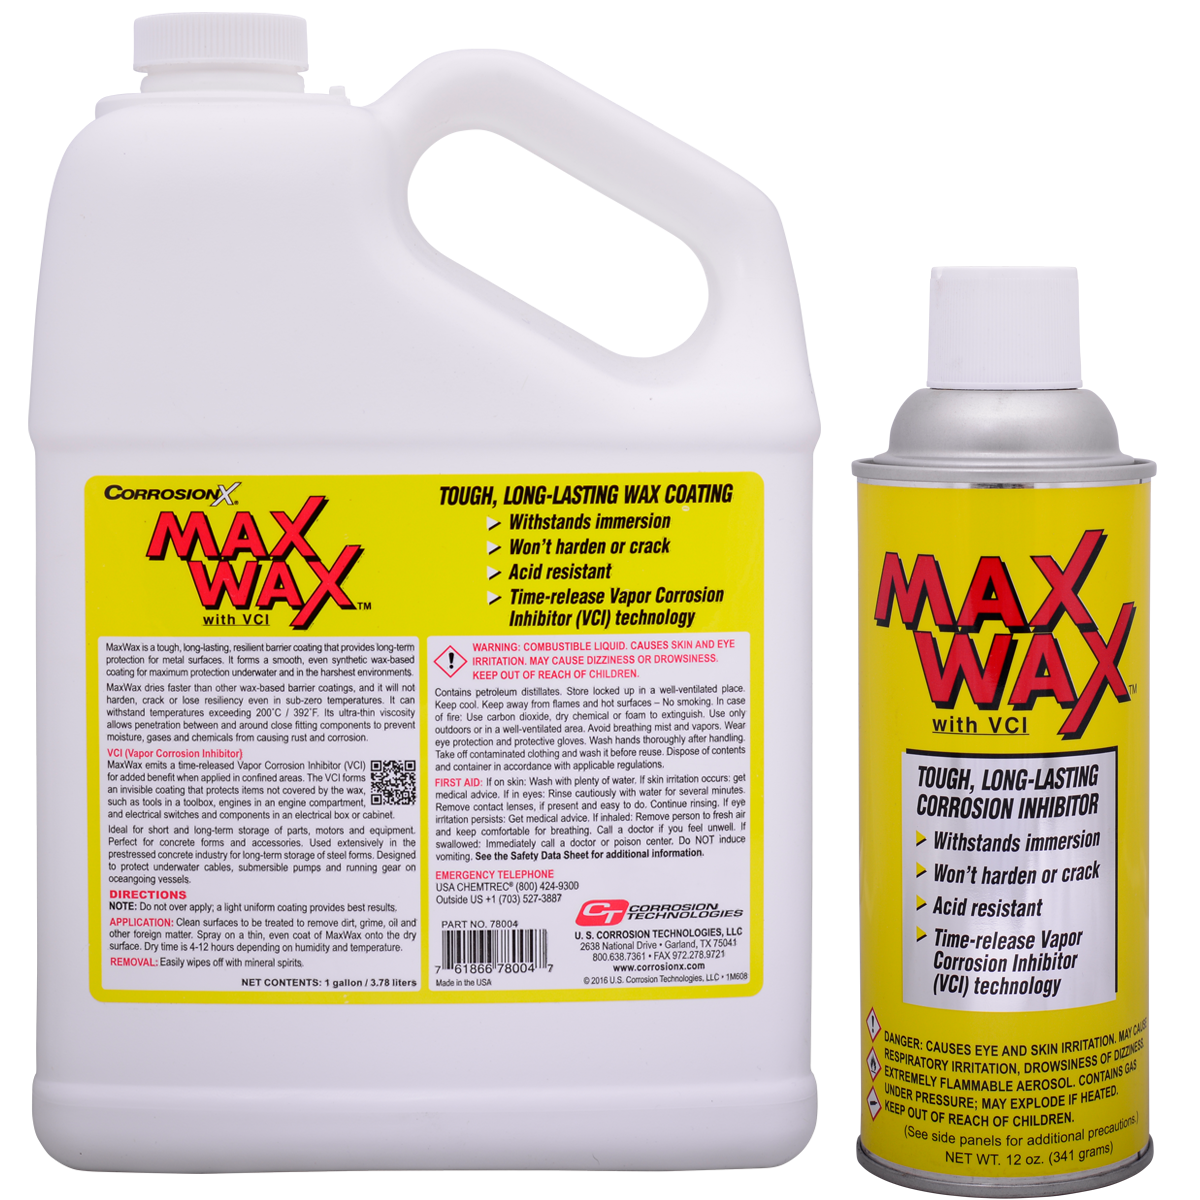 MaxWax dry, long-lasting corrosion preventive coating